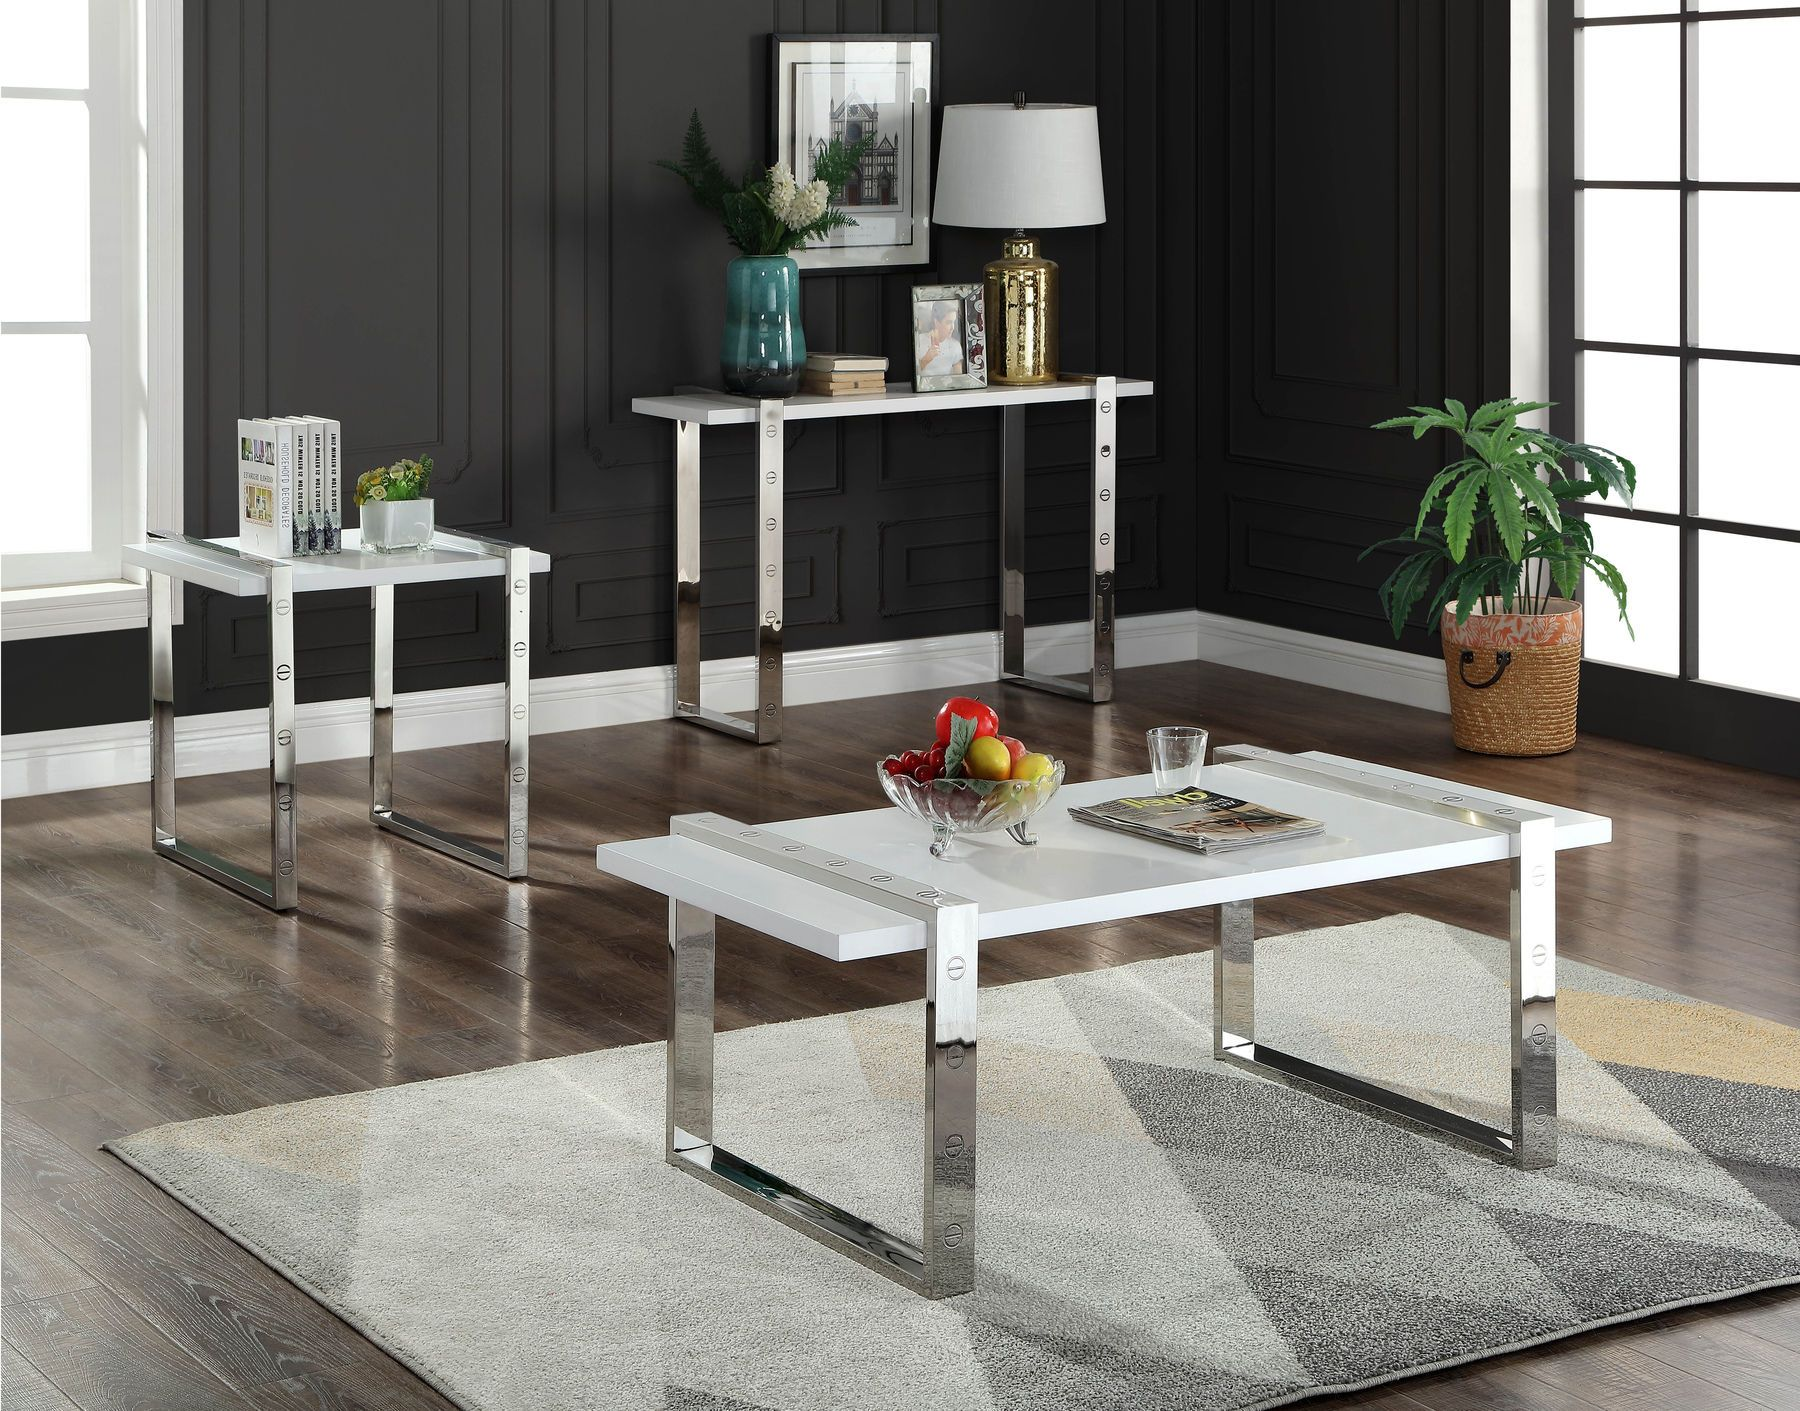 Amore Silver Coffee Table 3 Piece Coffee Table Set Contemporary